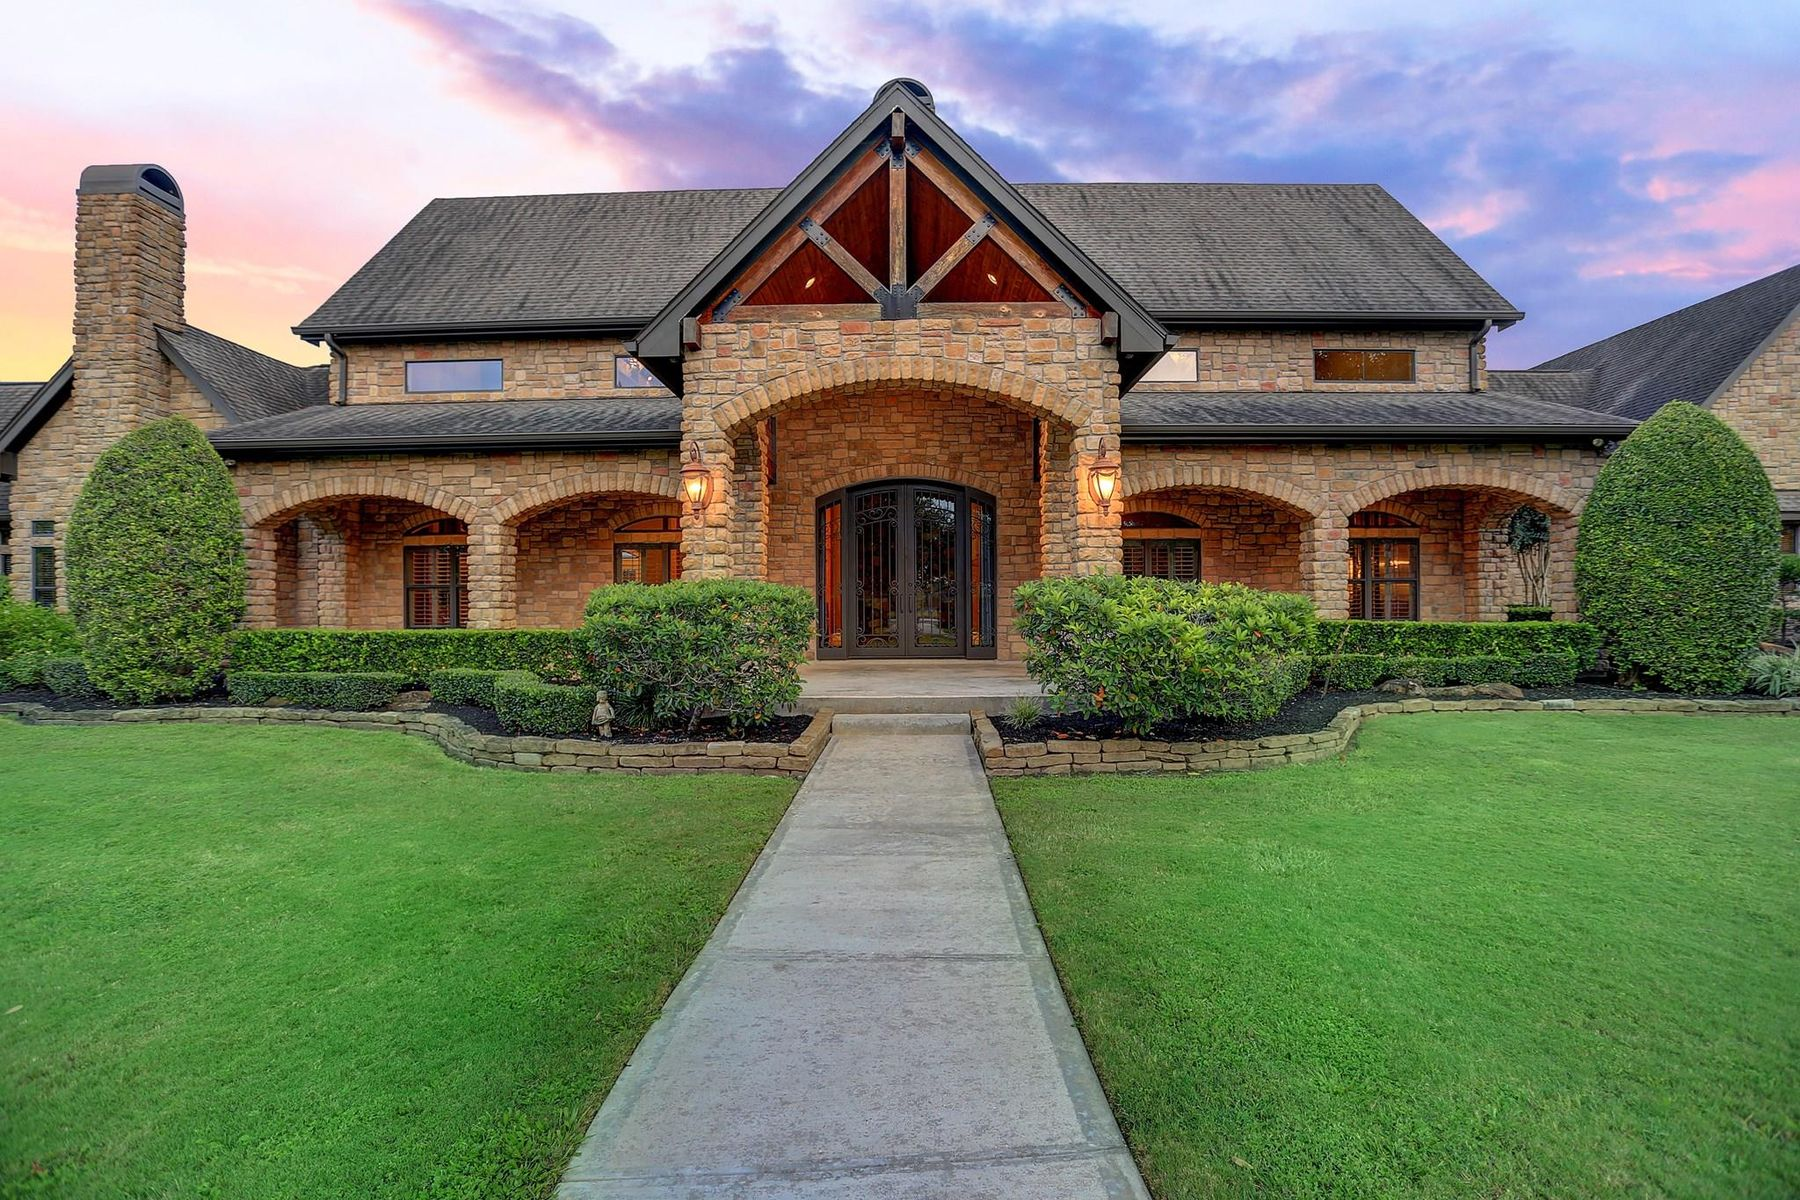 Single Family Homes for Sale at 1638 Mccrary Road Richmond, Texas 77406 United States